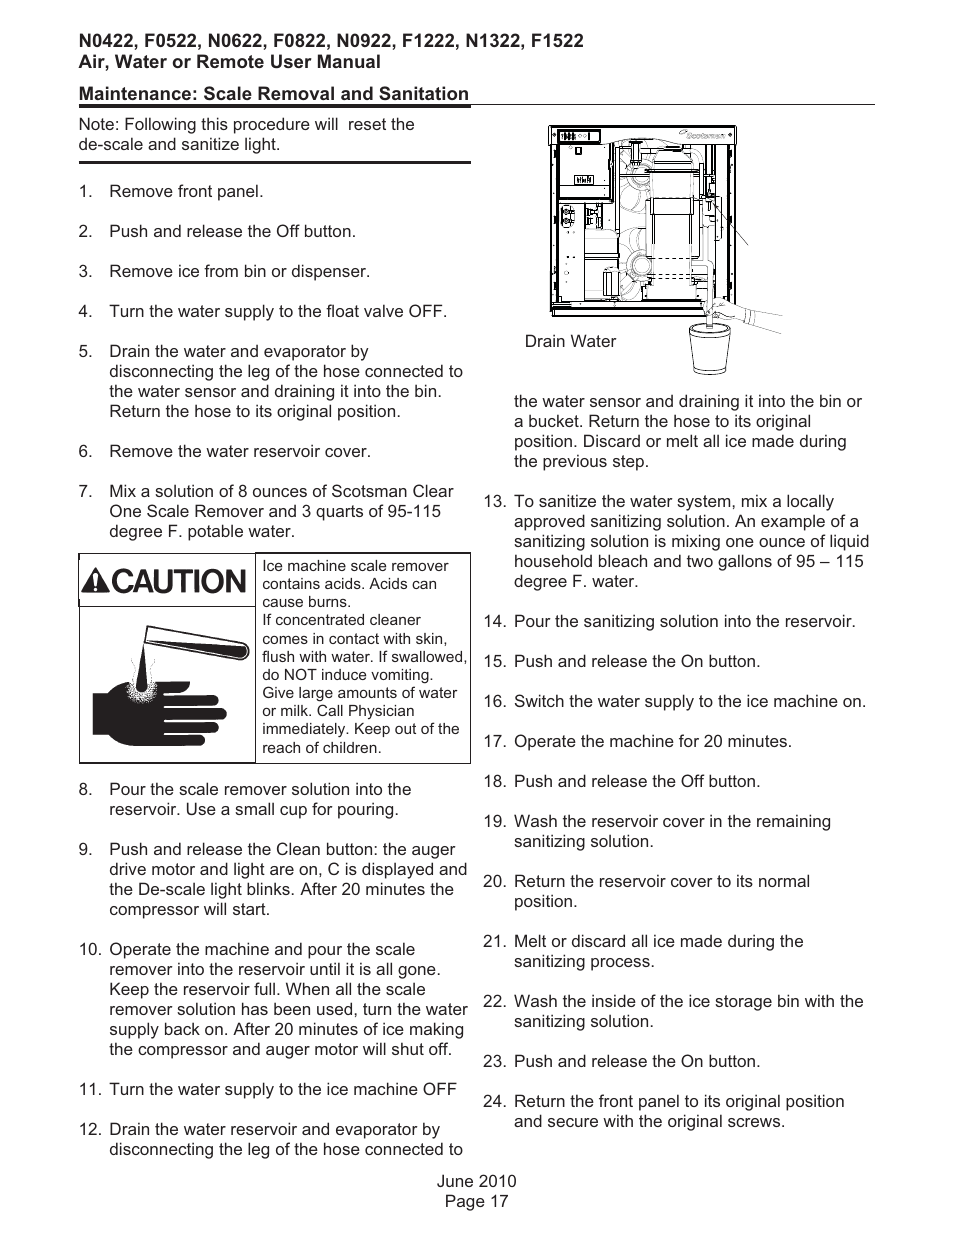 Scotsman F0522 User Manual | Page 18 / 24 | Also for: F0822, F1222, F1522,  N0422, N0622, N0922, N1322